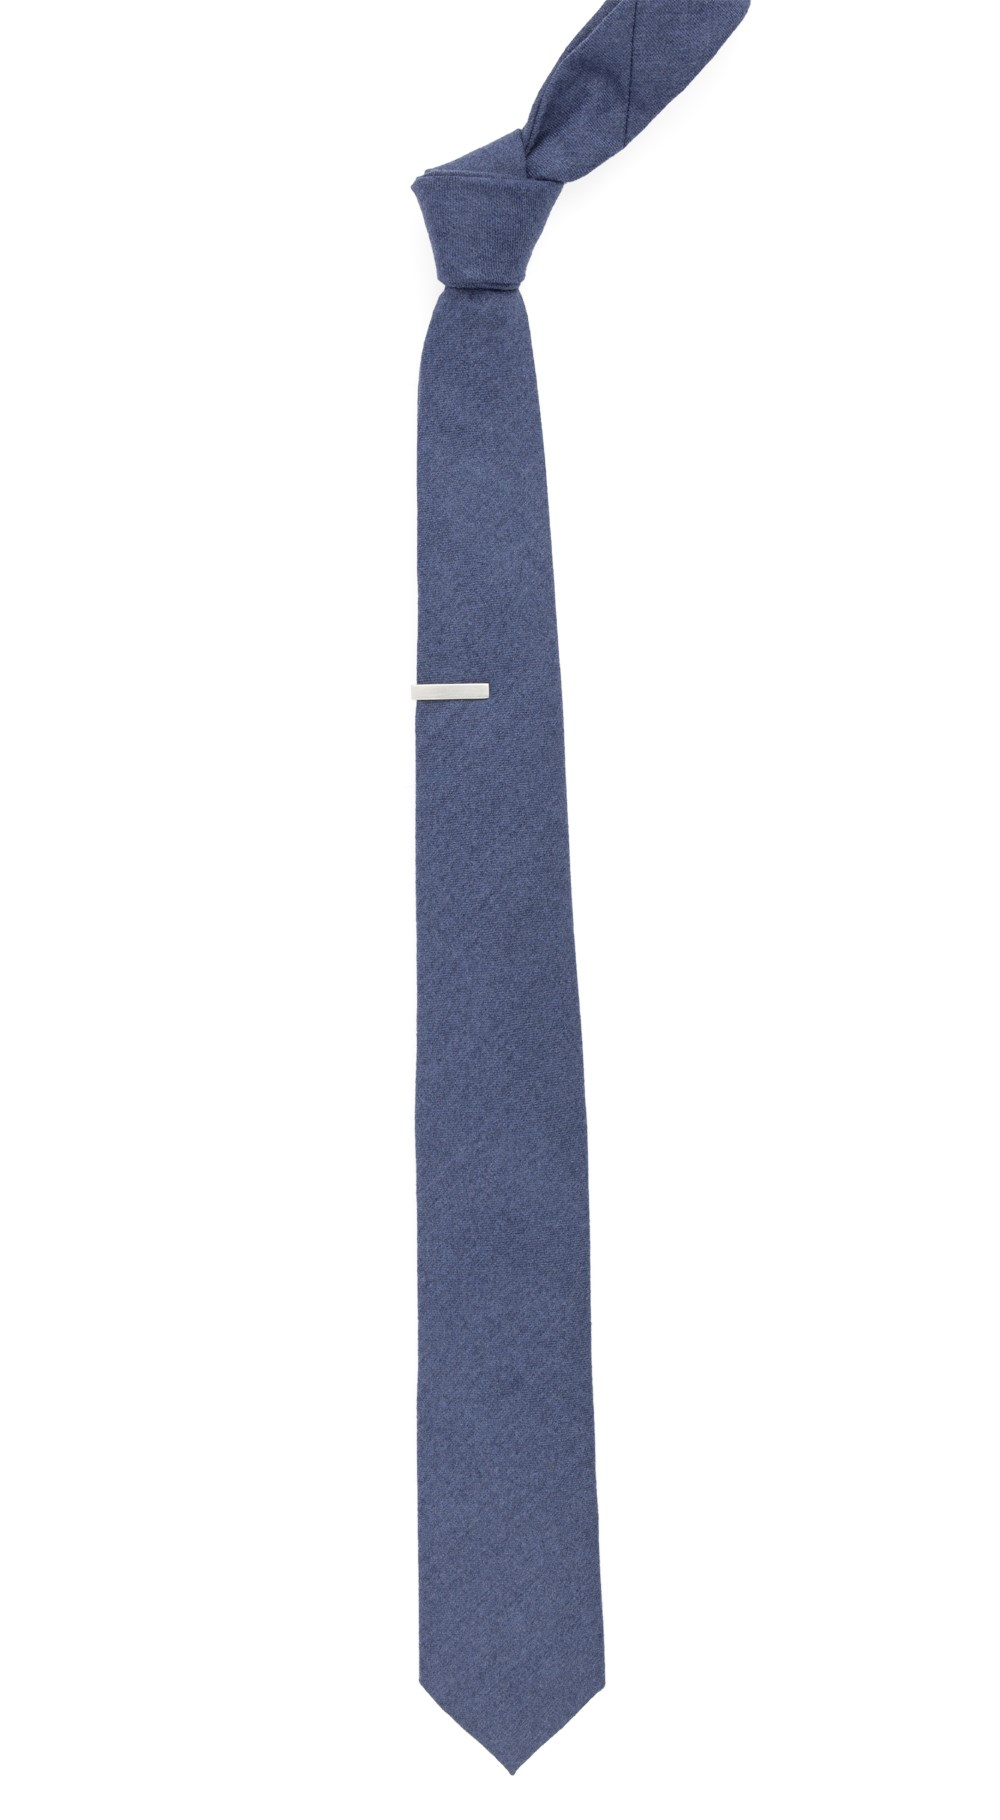 83a173802b76 ... Blue Barberis Wool Togna Tie - Blue Barberis Wool Togna Tie secondary  image